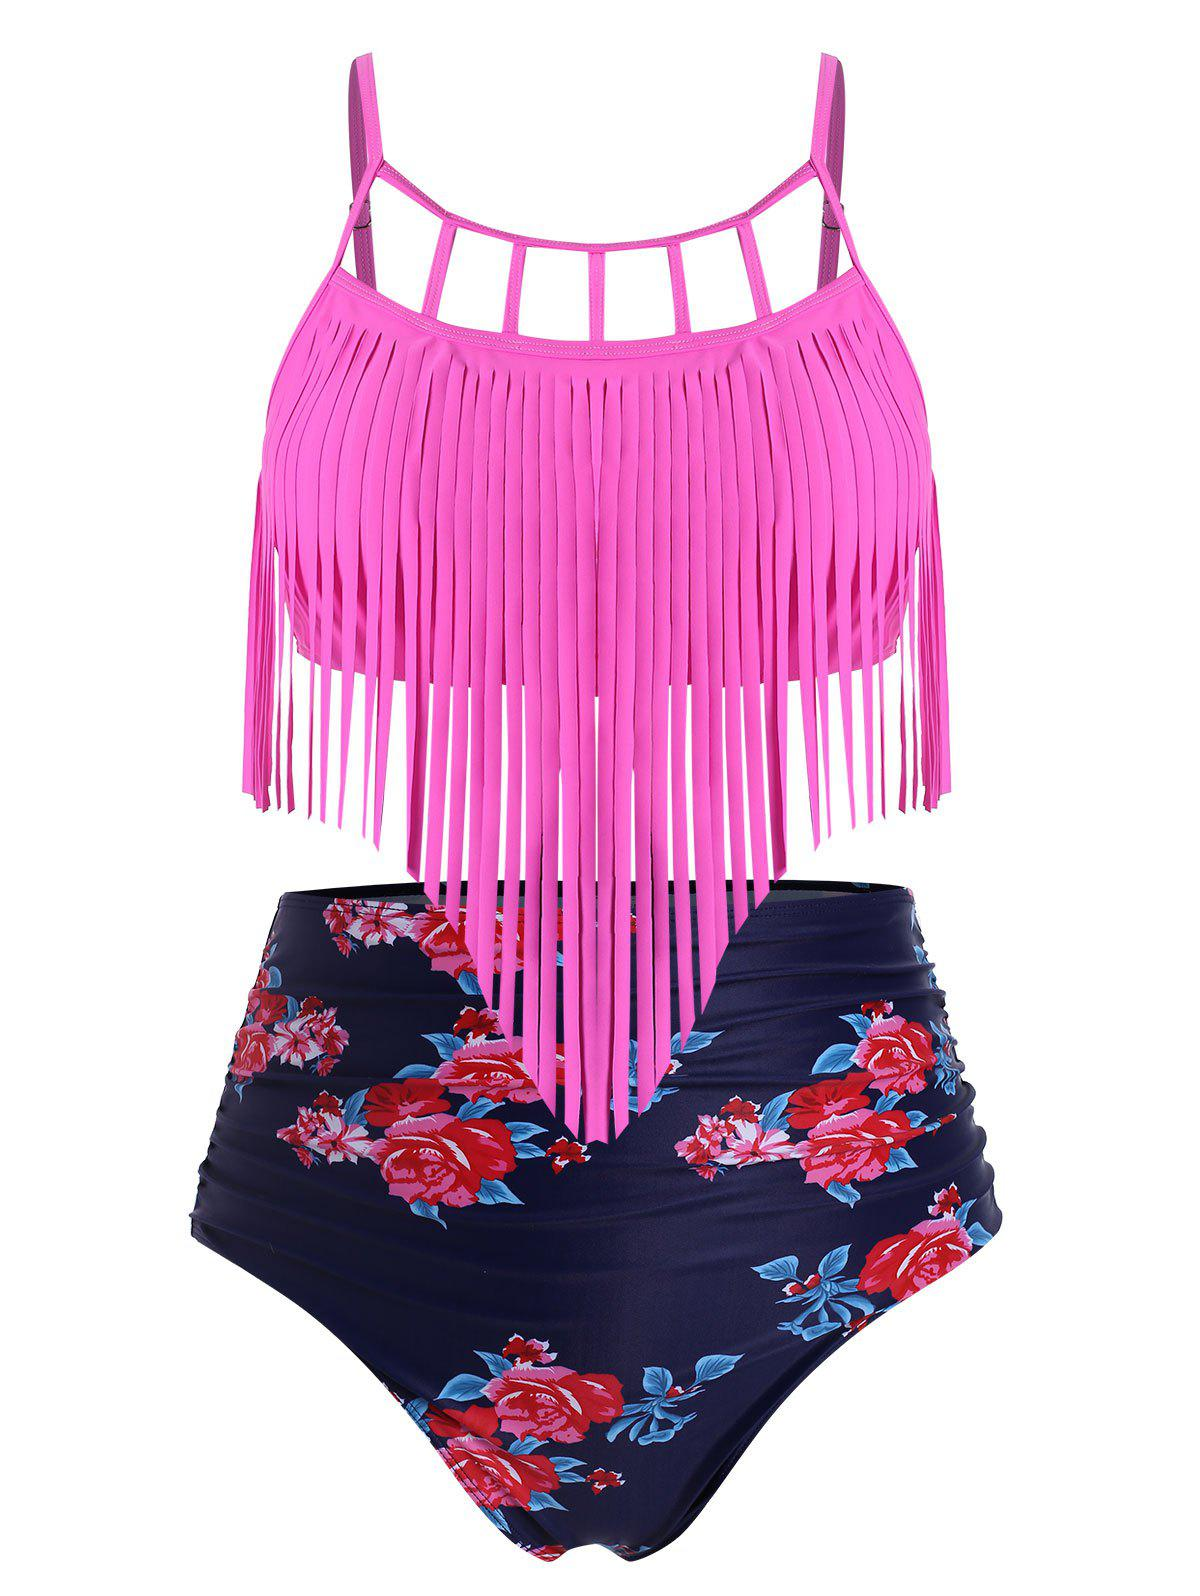 Ruched Fringed Floral High Waisted Plus Size Tankini Swimsuit, Rose red